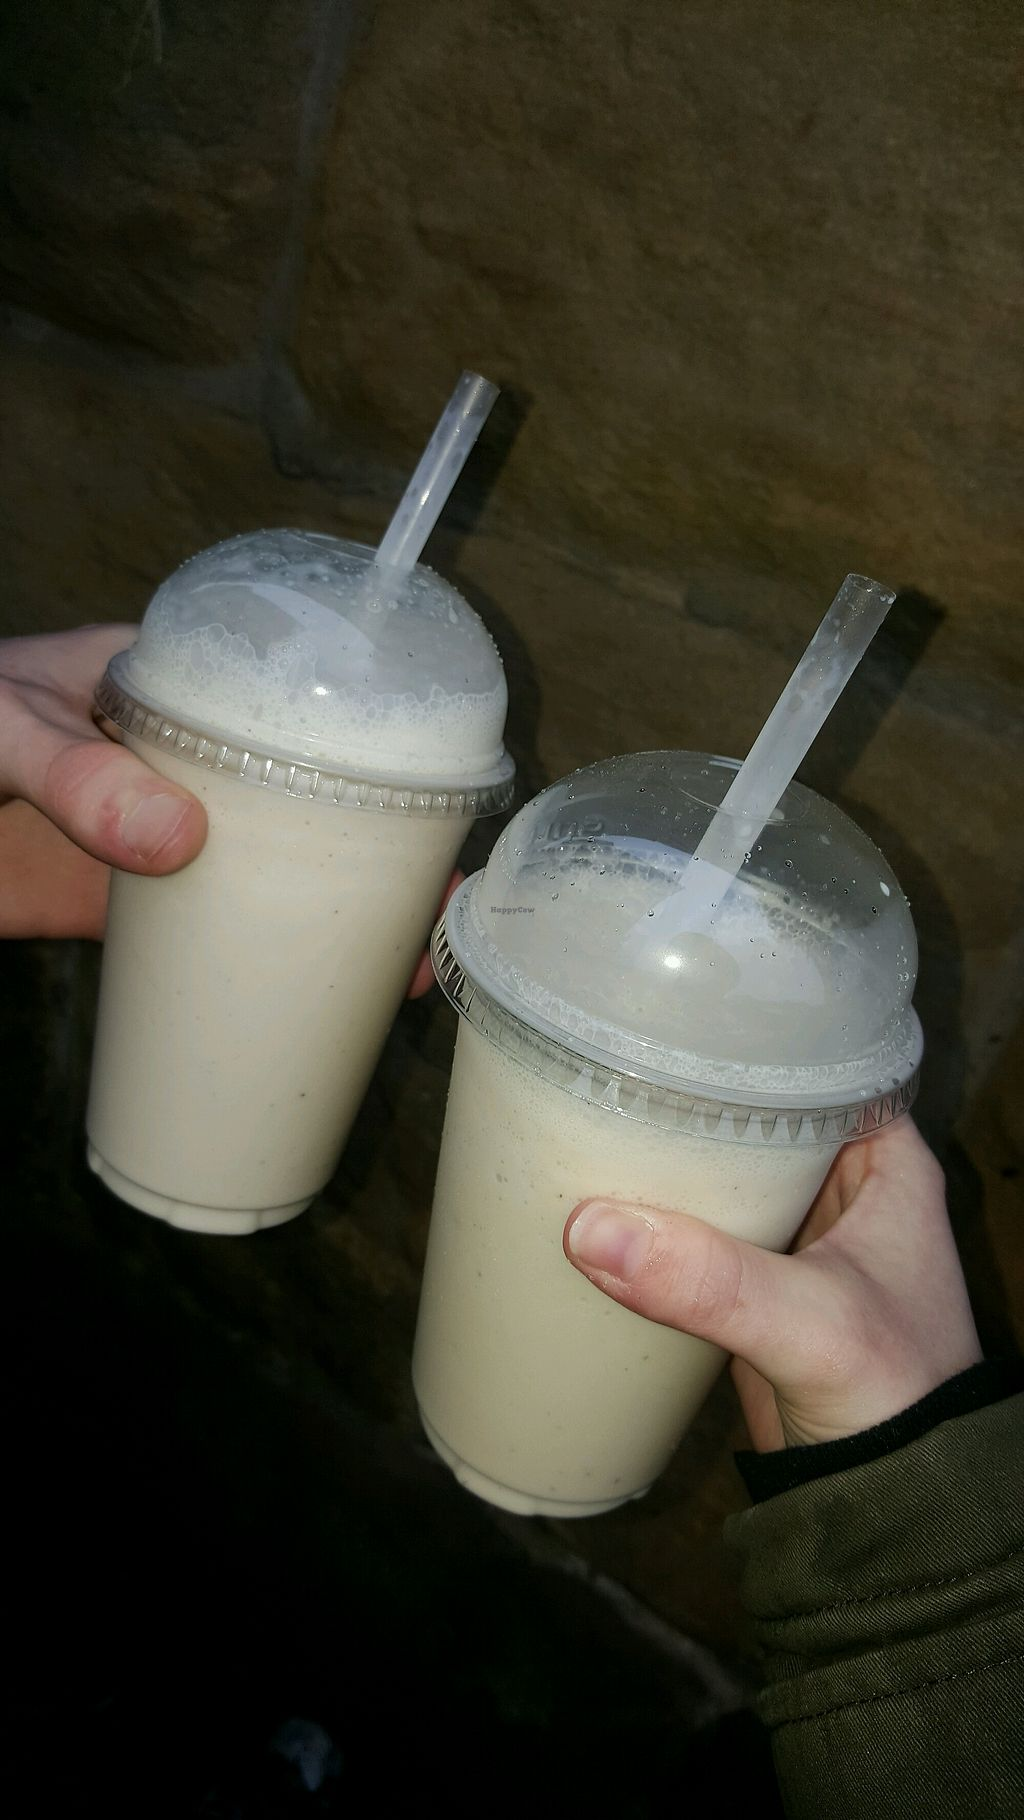 """Photo of The Origami Cafe & Gift Shop  by <a href=""""/members/profile/HannahCharlotte"""">HannahCharlotte</a> <br/>The Raspberry Rose and White Chocolate vegan milkshakes <br/> April 10, 2018  - <a href='/contact/abuse/image/96471/383245'>Report</a>"""